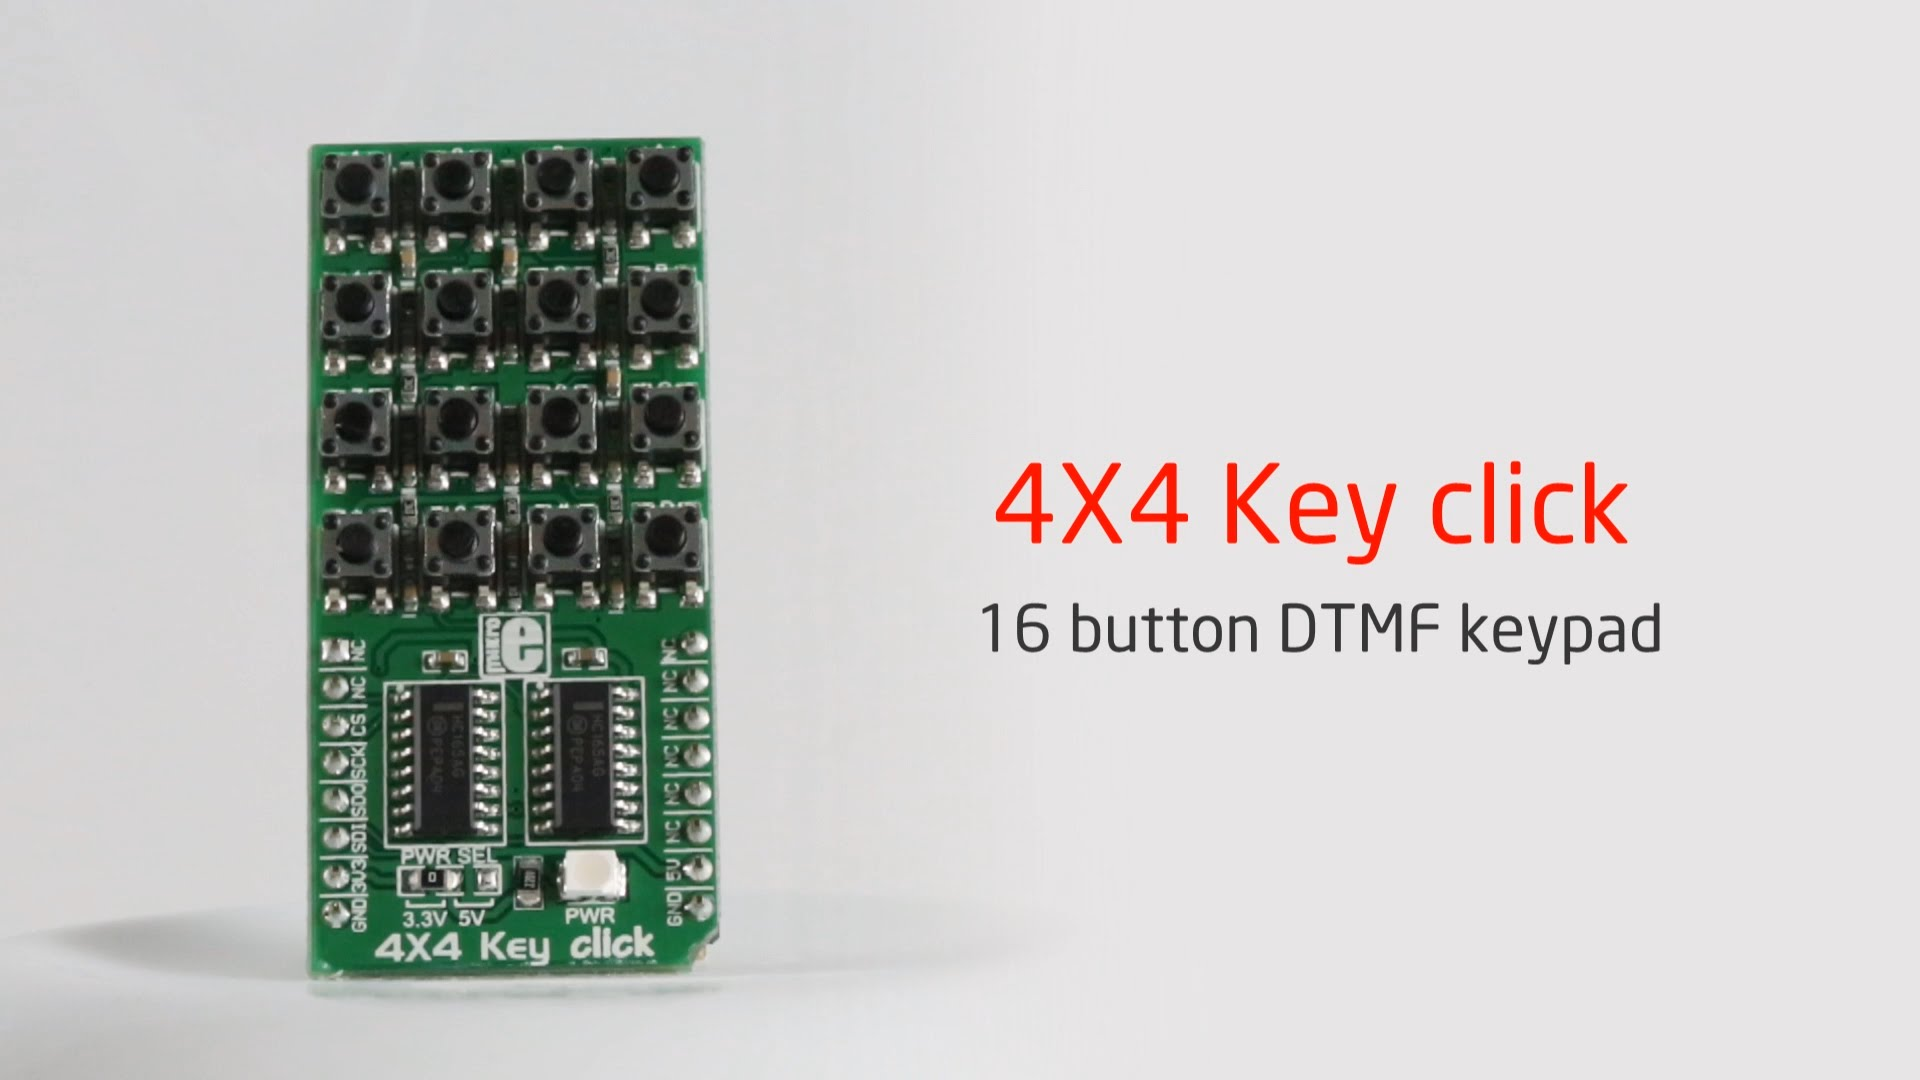 4x4 Key click released